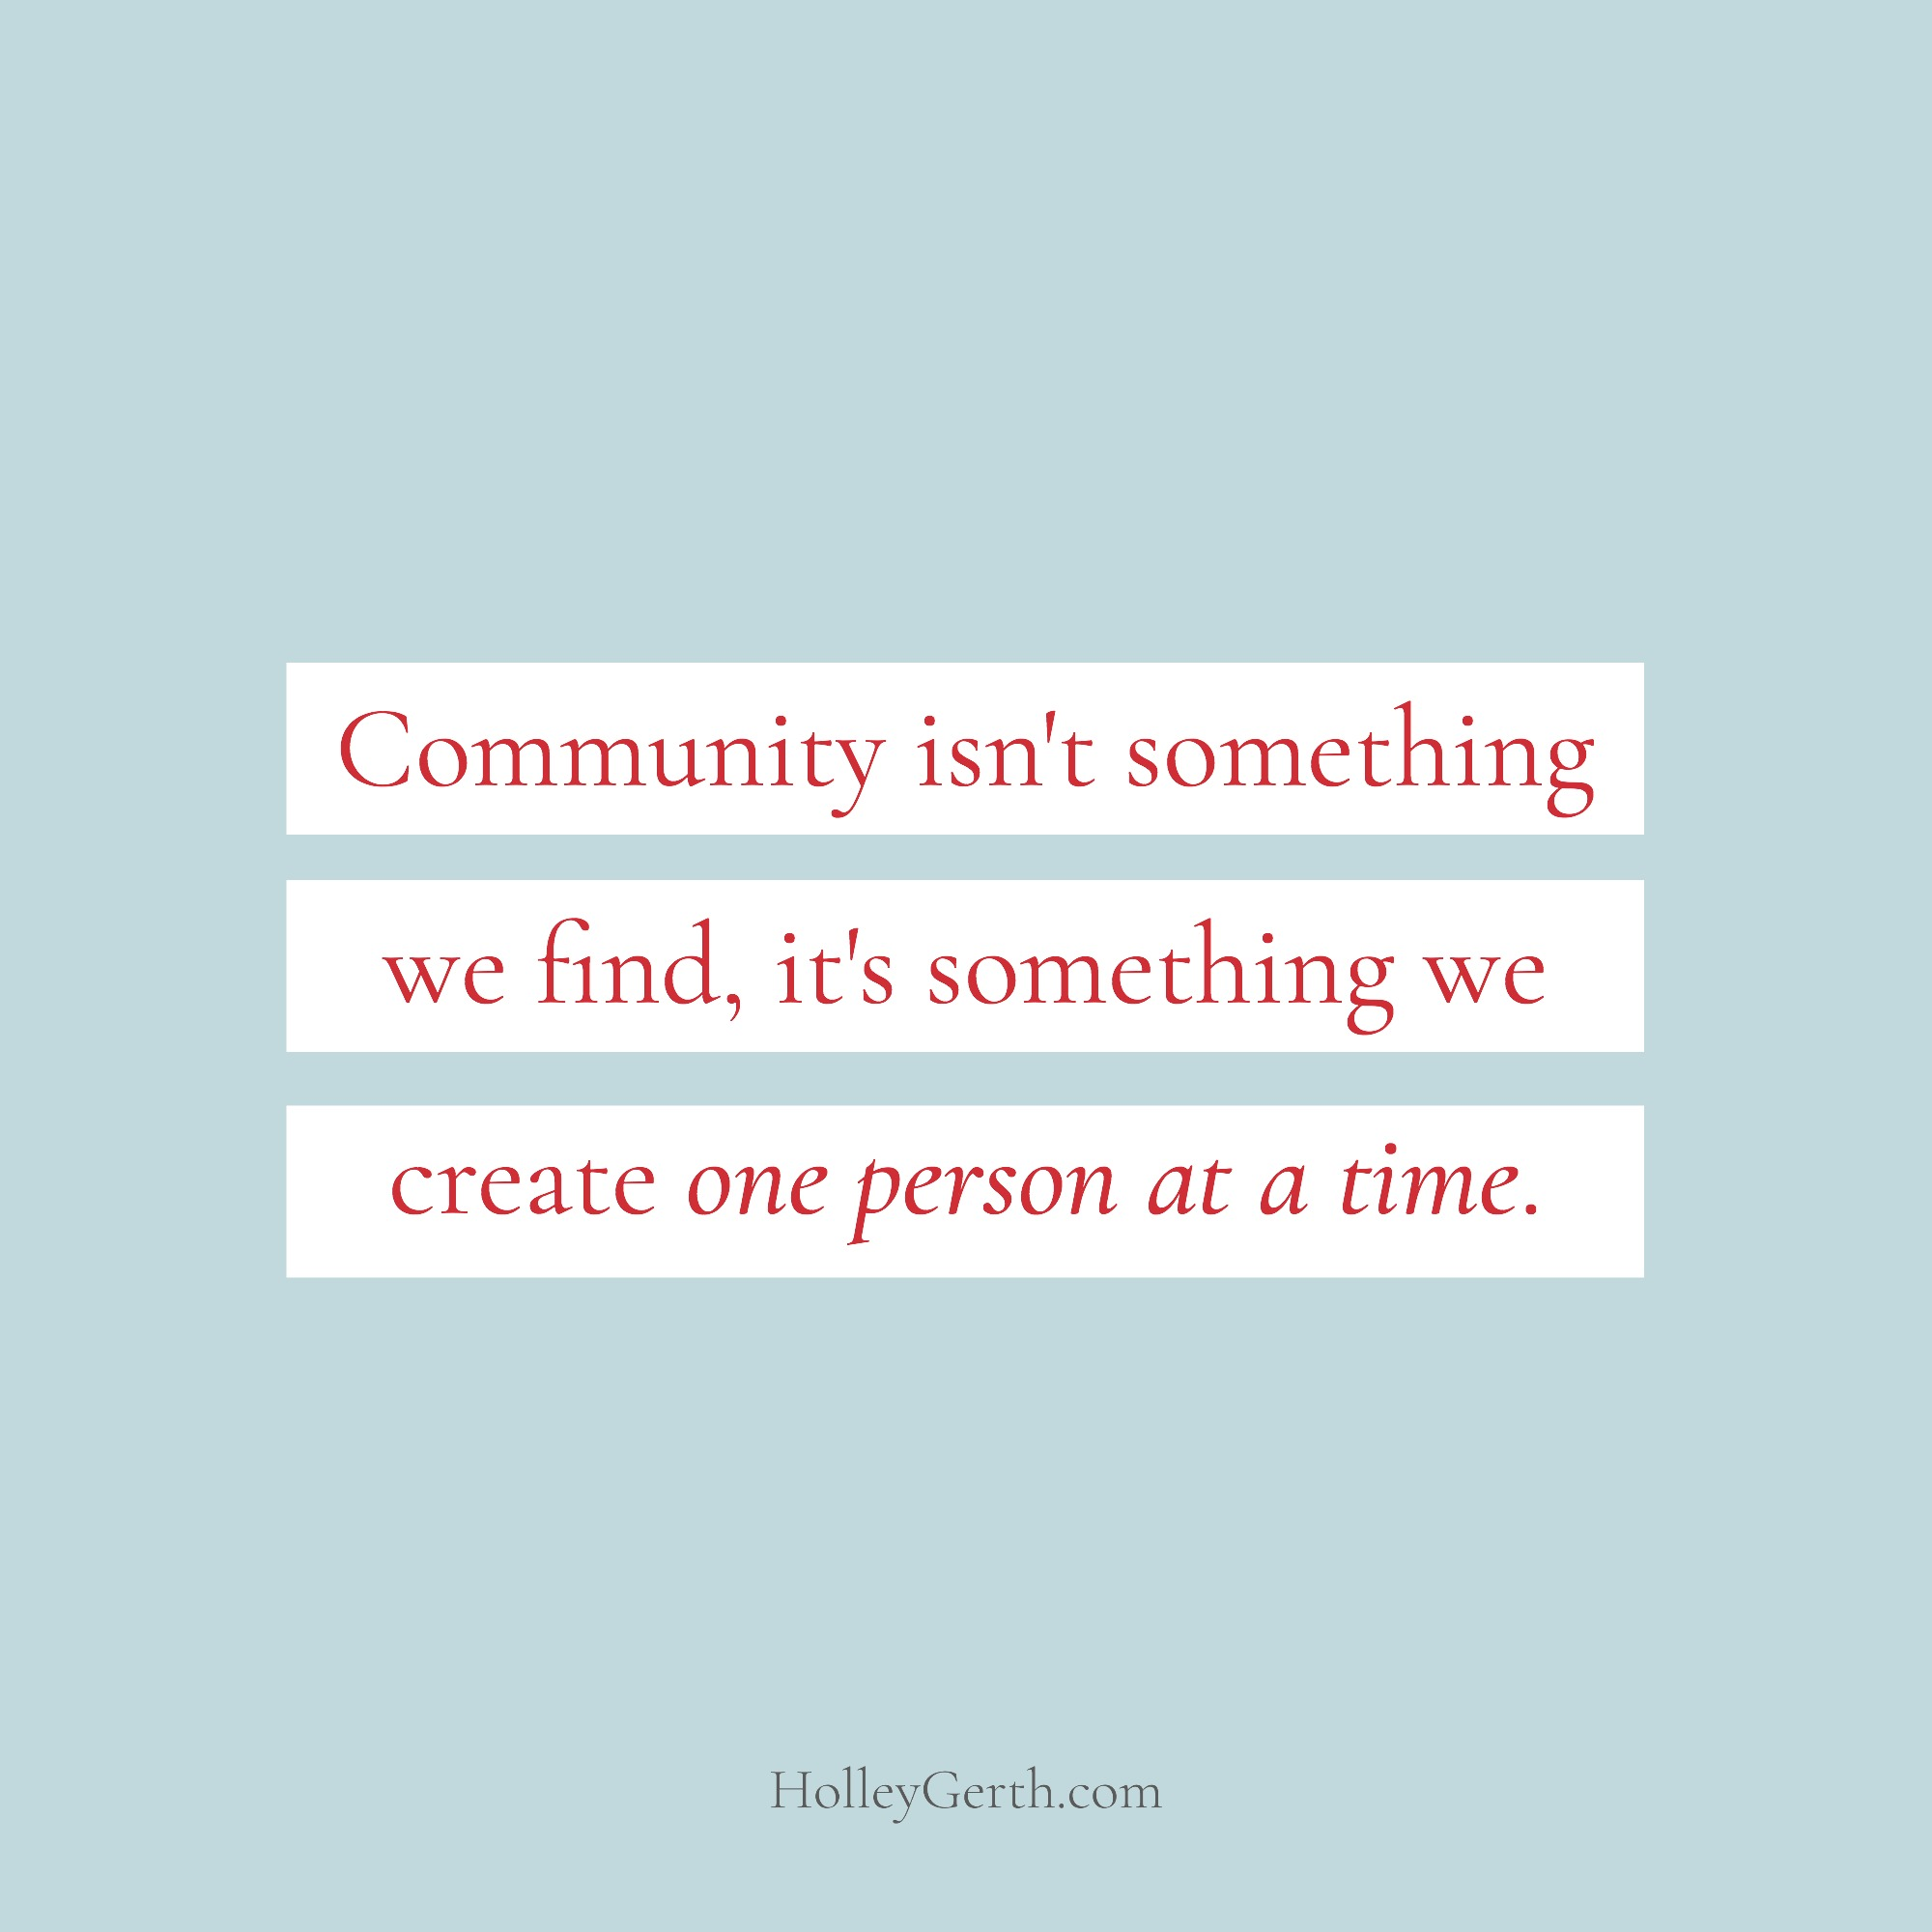 Community isn't something we find, it's something we create one person at a time.